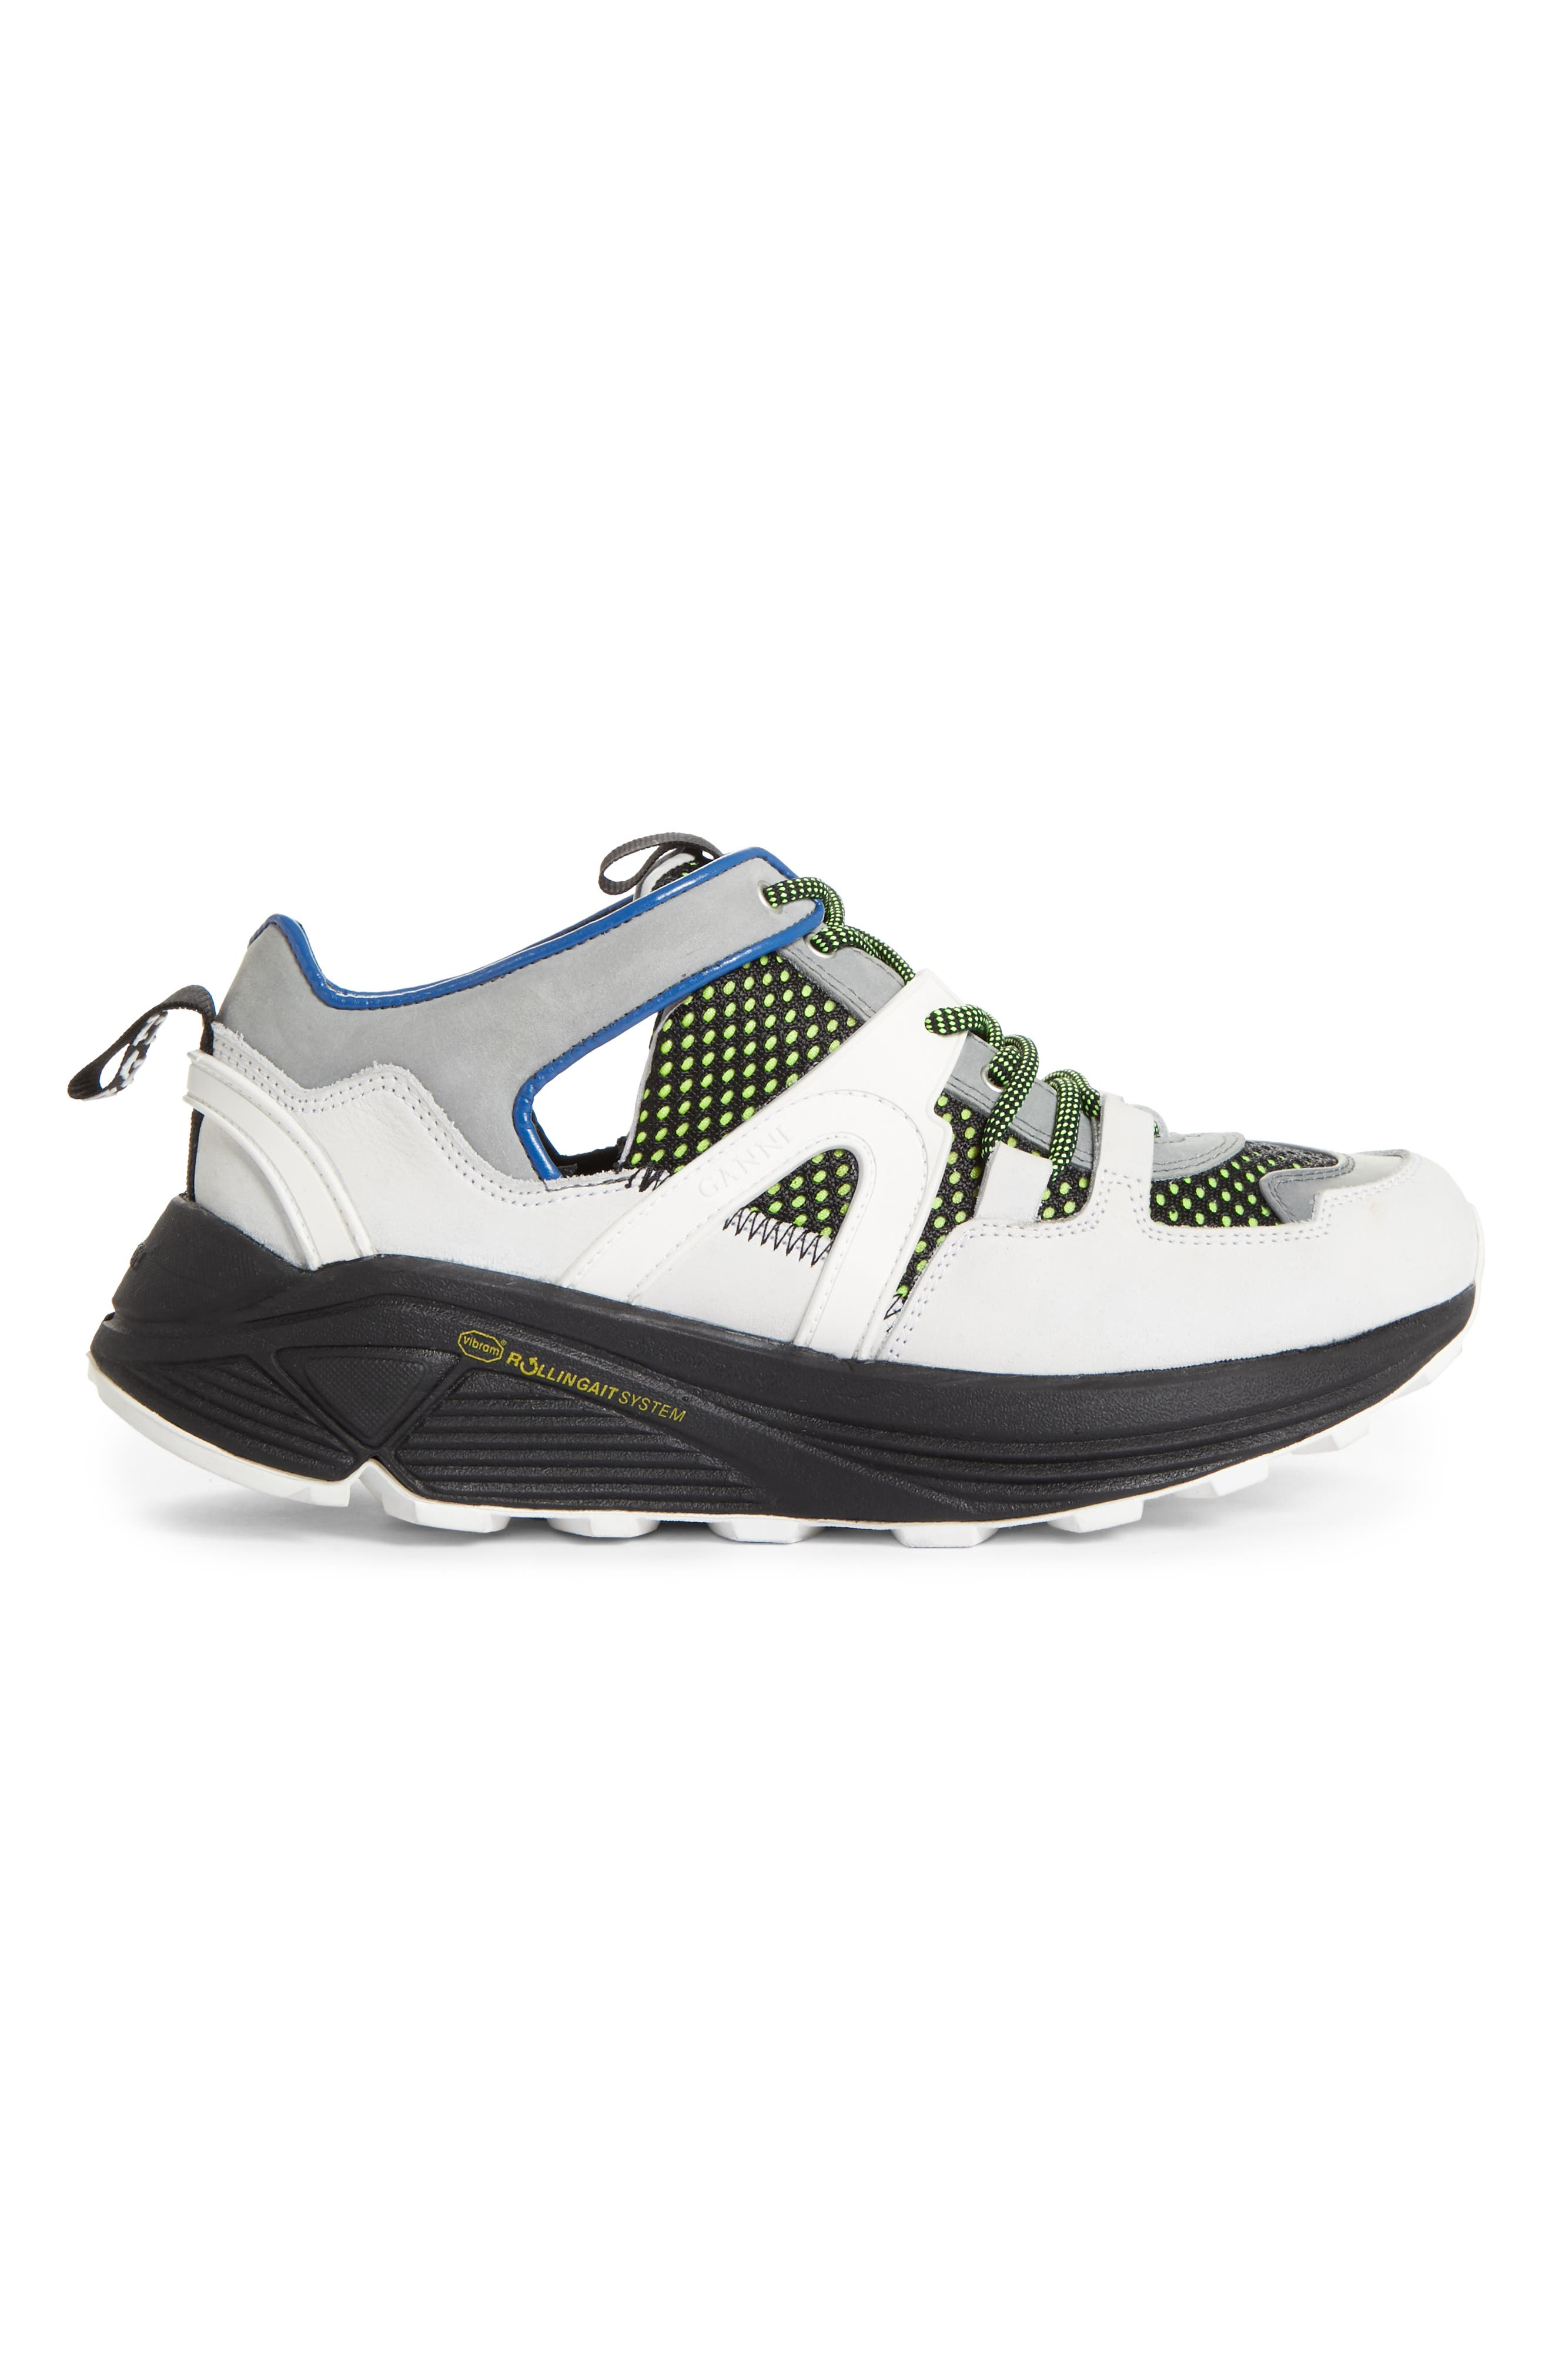 GANNI,                             Tech Sneaker,                             Alternate thumbnail 3, color,                             MULTICOLOUR 999